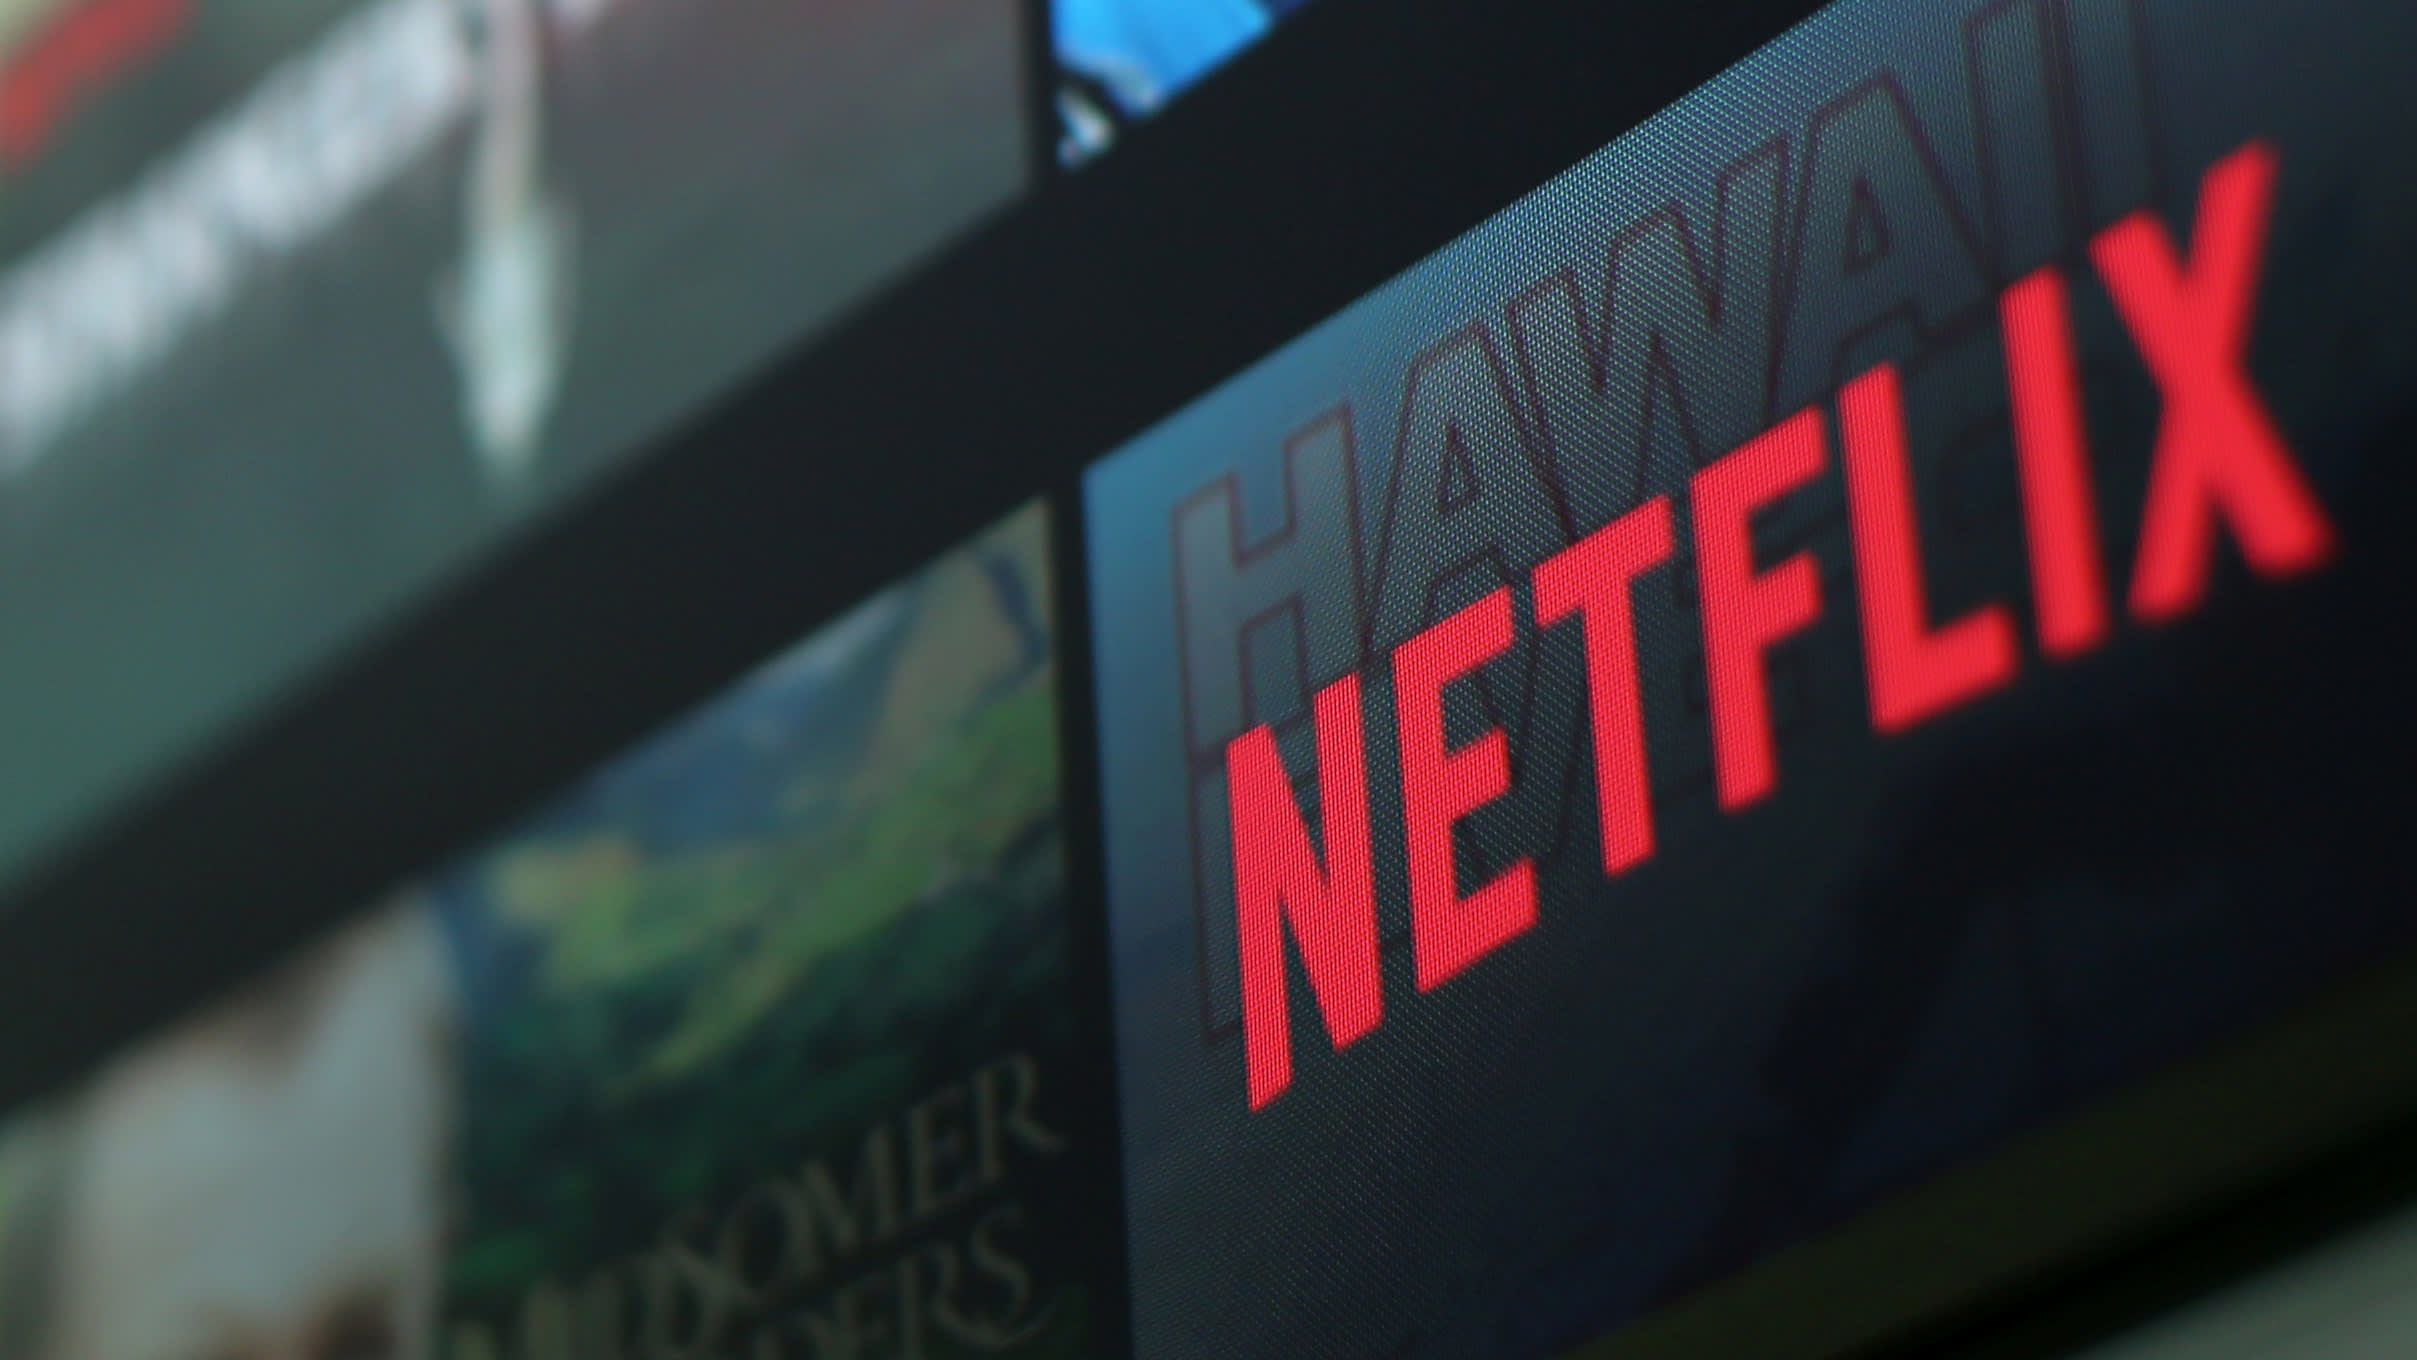 Netflix casts India as its new star